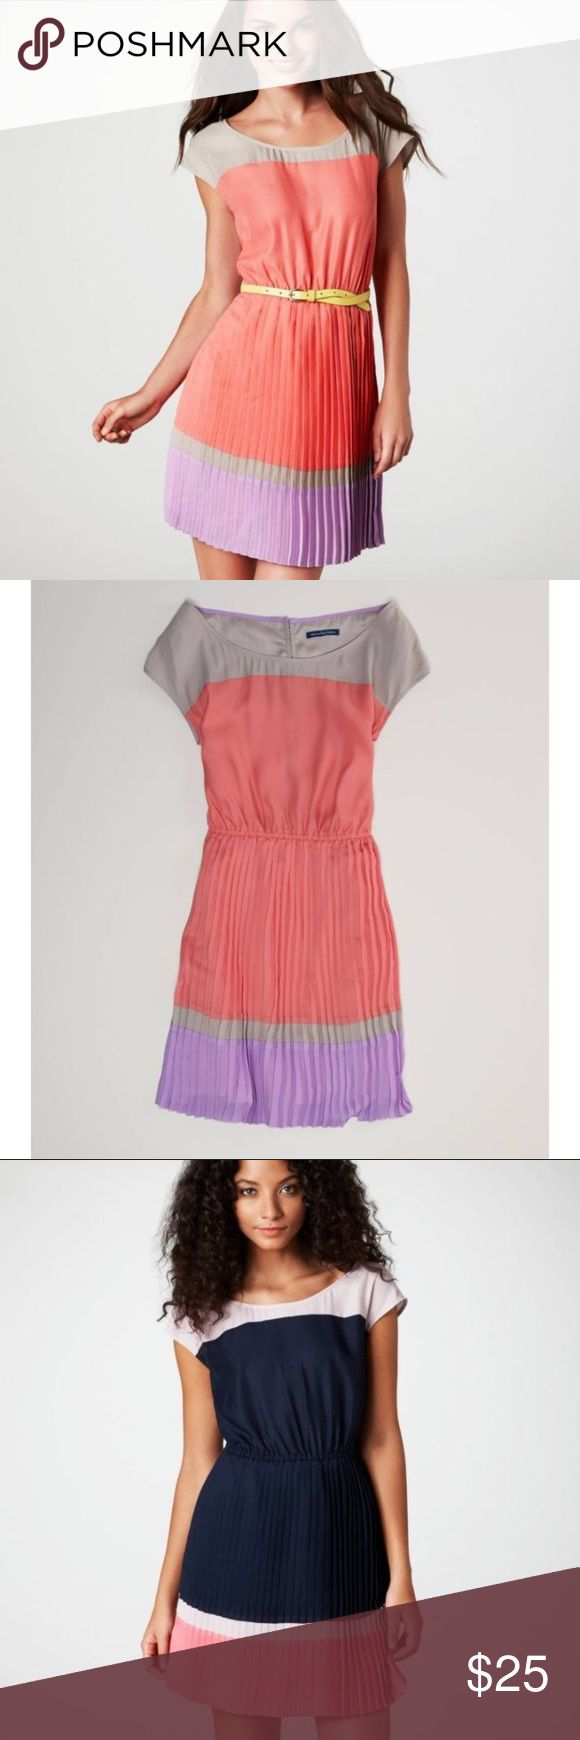 "American Eagle Outfitters AE Colorblock Dress S NEW WITHOUT TAG American Eagle Outfitters AE Open Back Pleated Colorblock Dress  Color: Pink  Size: S/P  SOLD OUT IN STORES AND ONLINE!!  Pretty in pleats.  100% Polyester Soft satin.  Bold colorblocking.  Scoop neck.  Cap sleeves.  Sexy open back.  Accordion-pleated skirt.  Three-button closure at neck.  Lined.  31"" from center back.  Imported,  Machine Wash. American Eagle Outfitters Dresses"